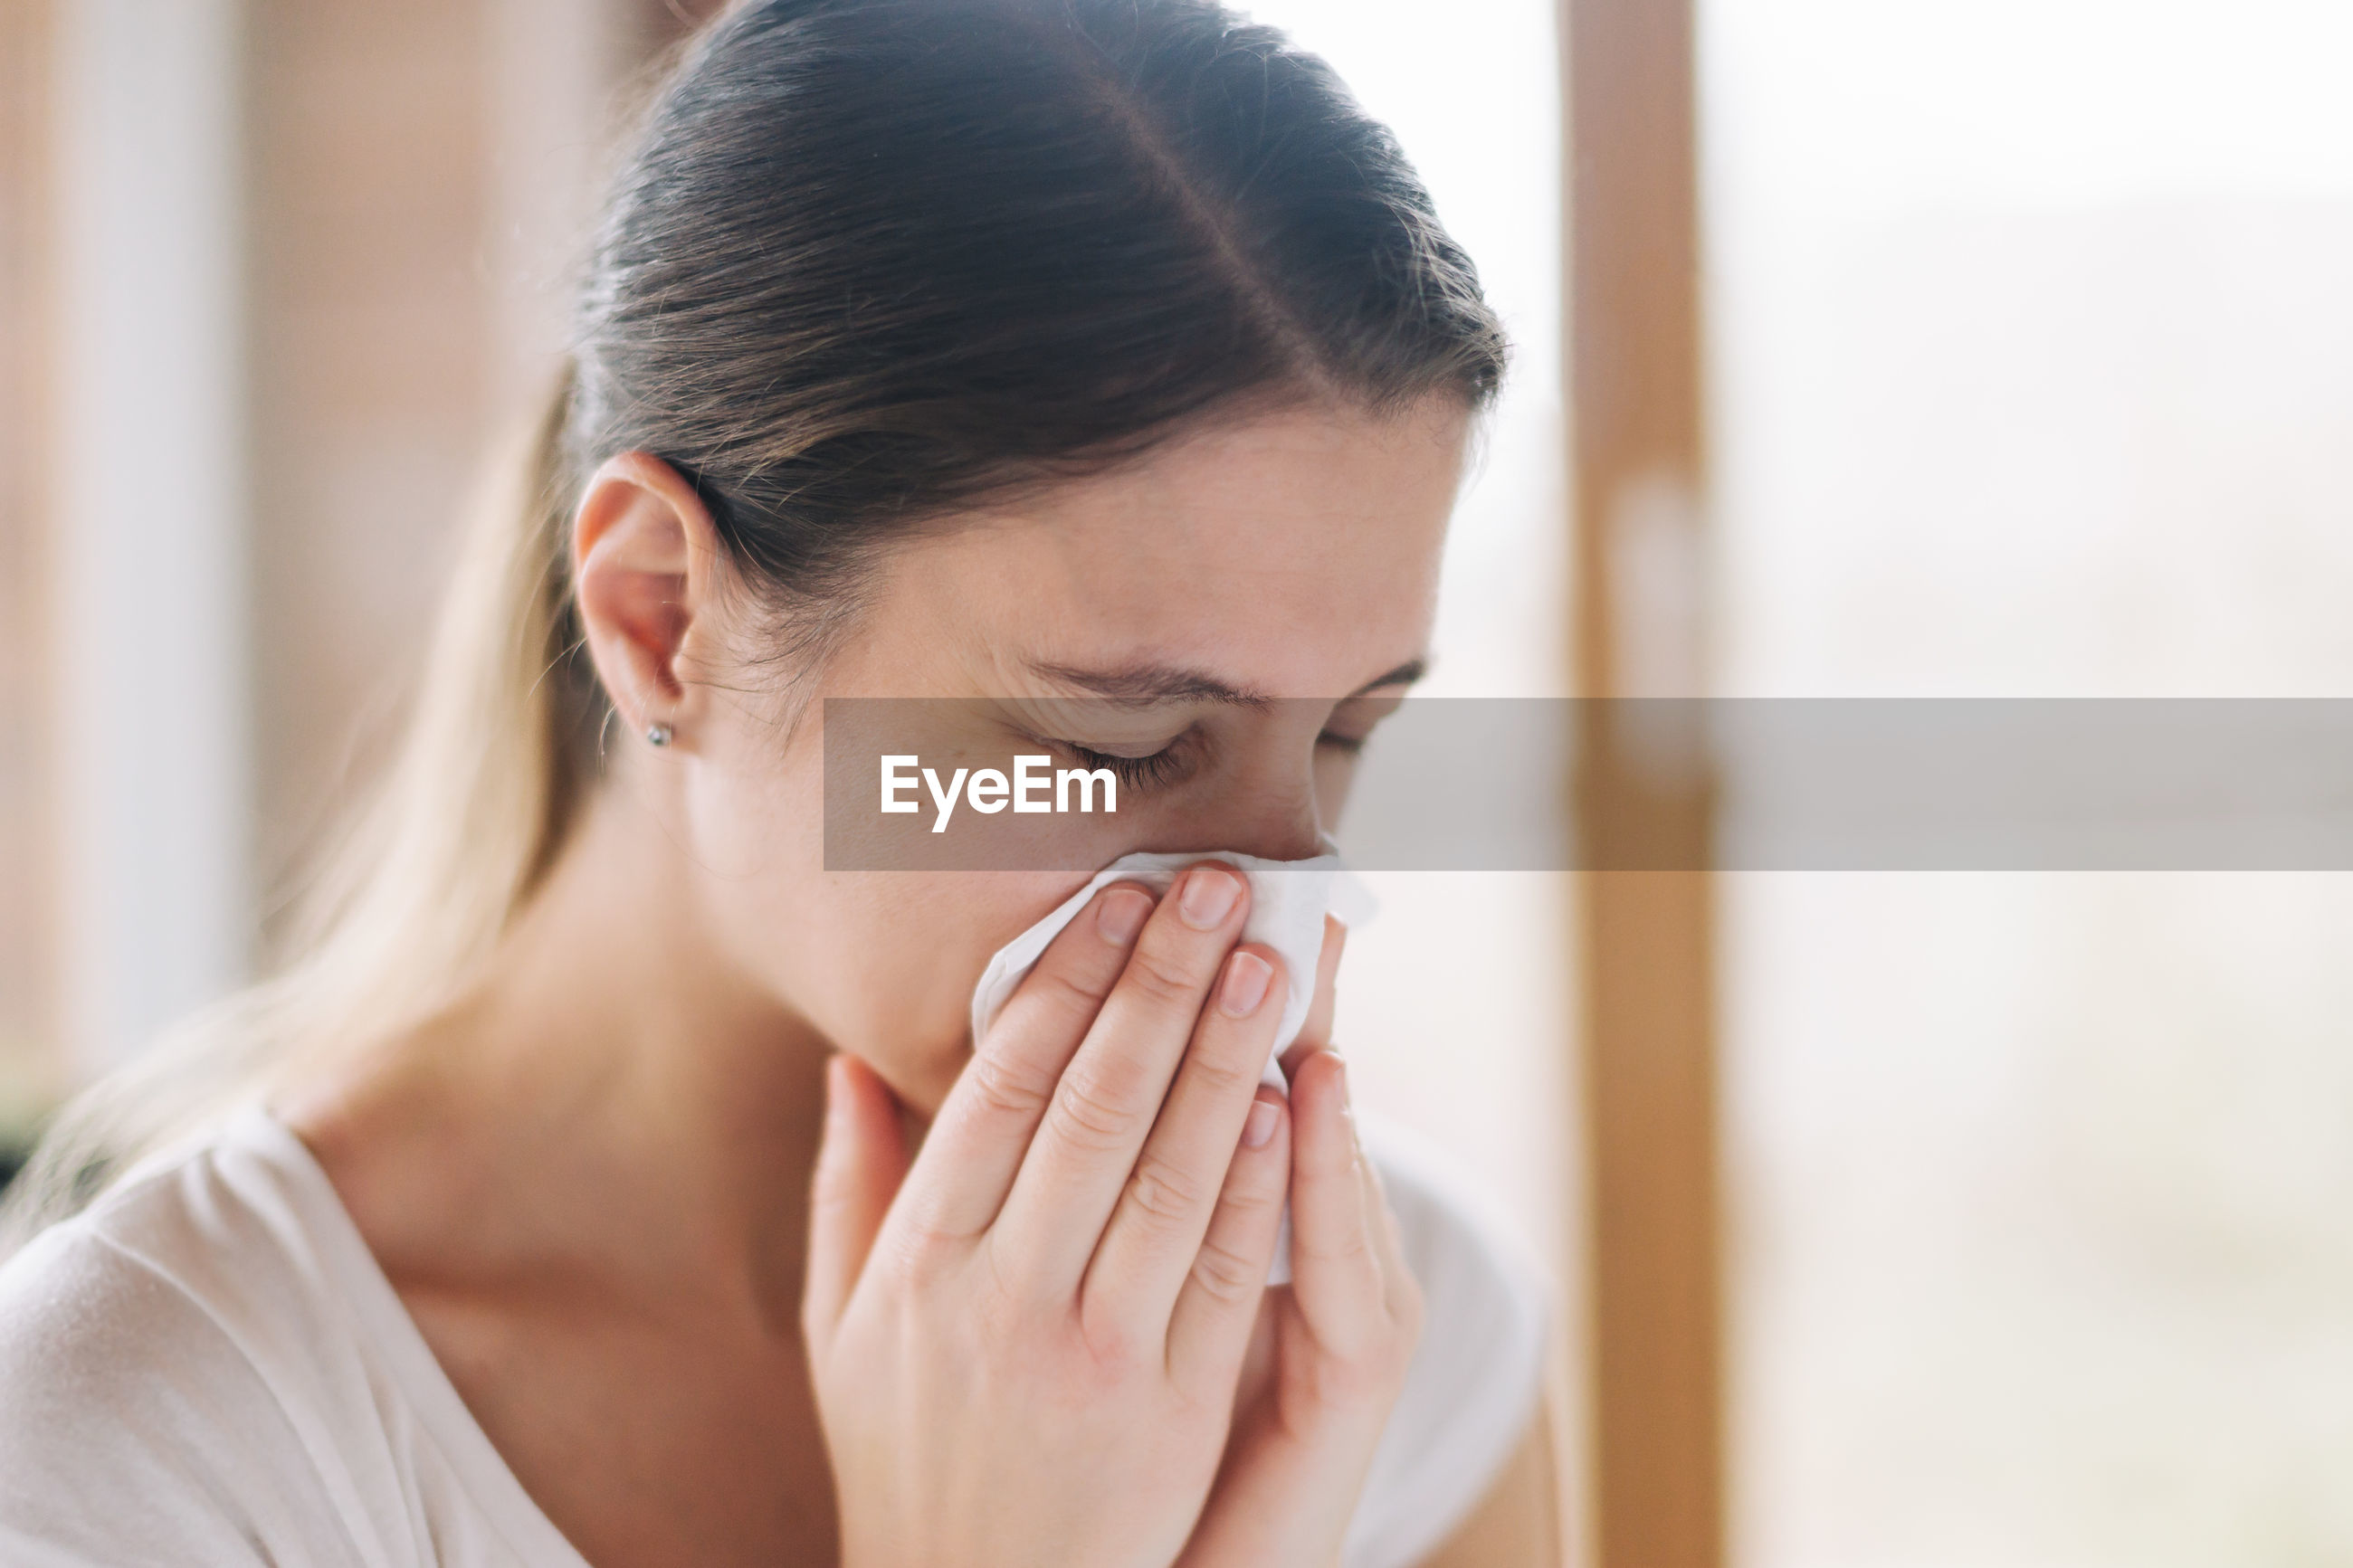 Close-up of ill woman blowing nose in tissue at home